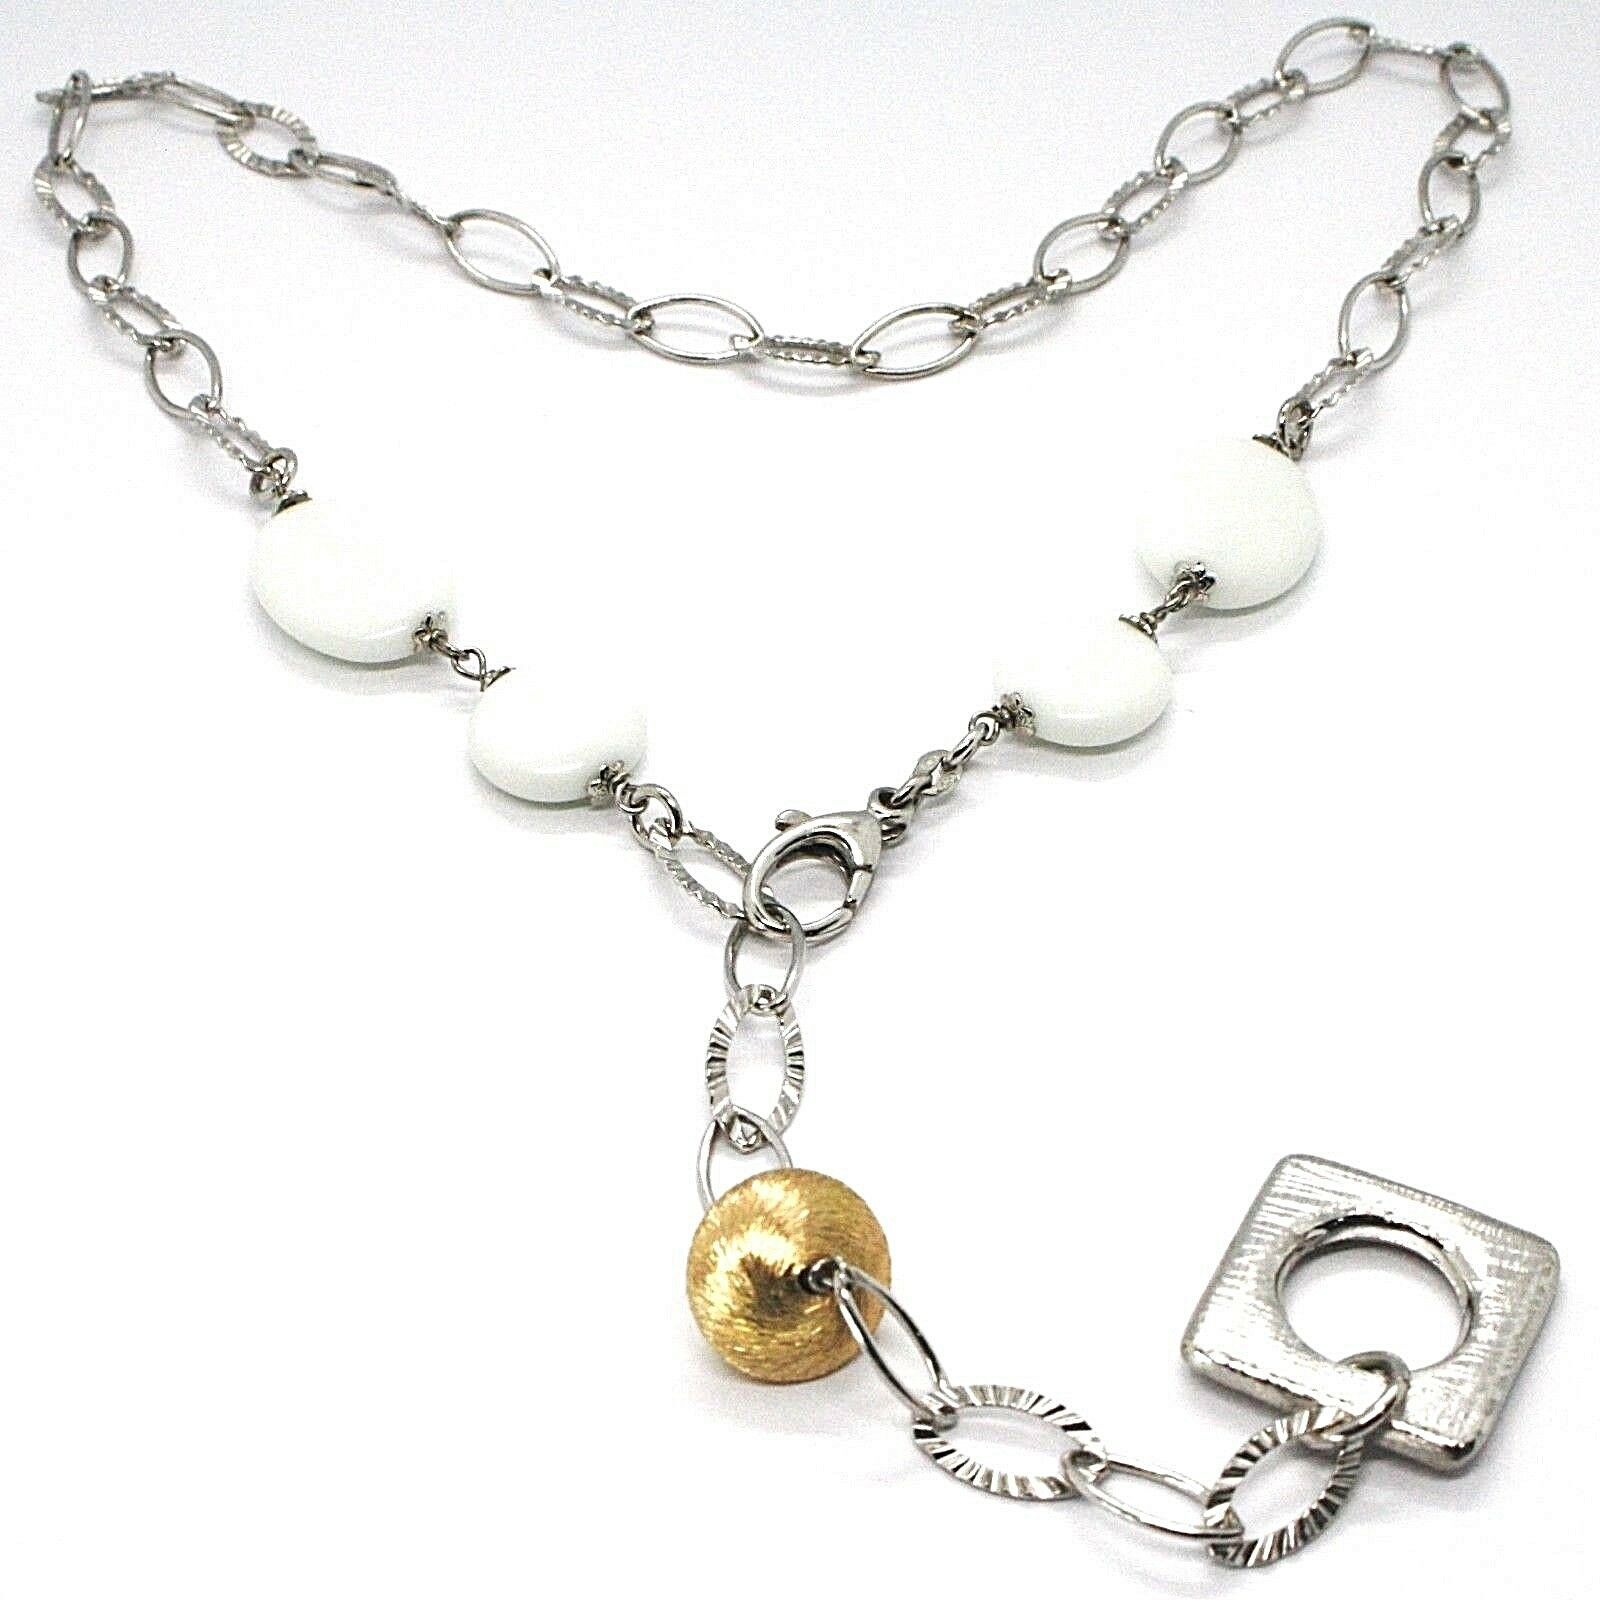 SILVER 925 NECKLACE, AGATE WHITE, SQUARE PENDANT, CHAIN OVALS WORKED